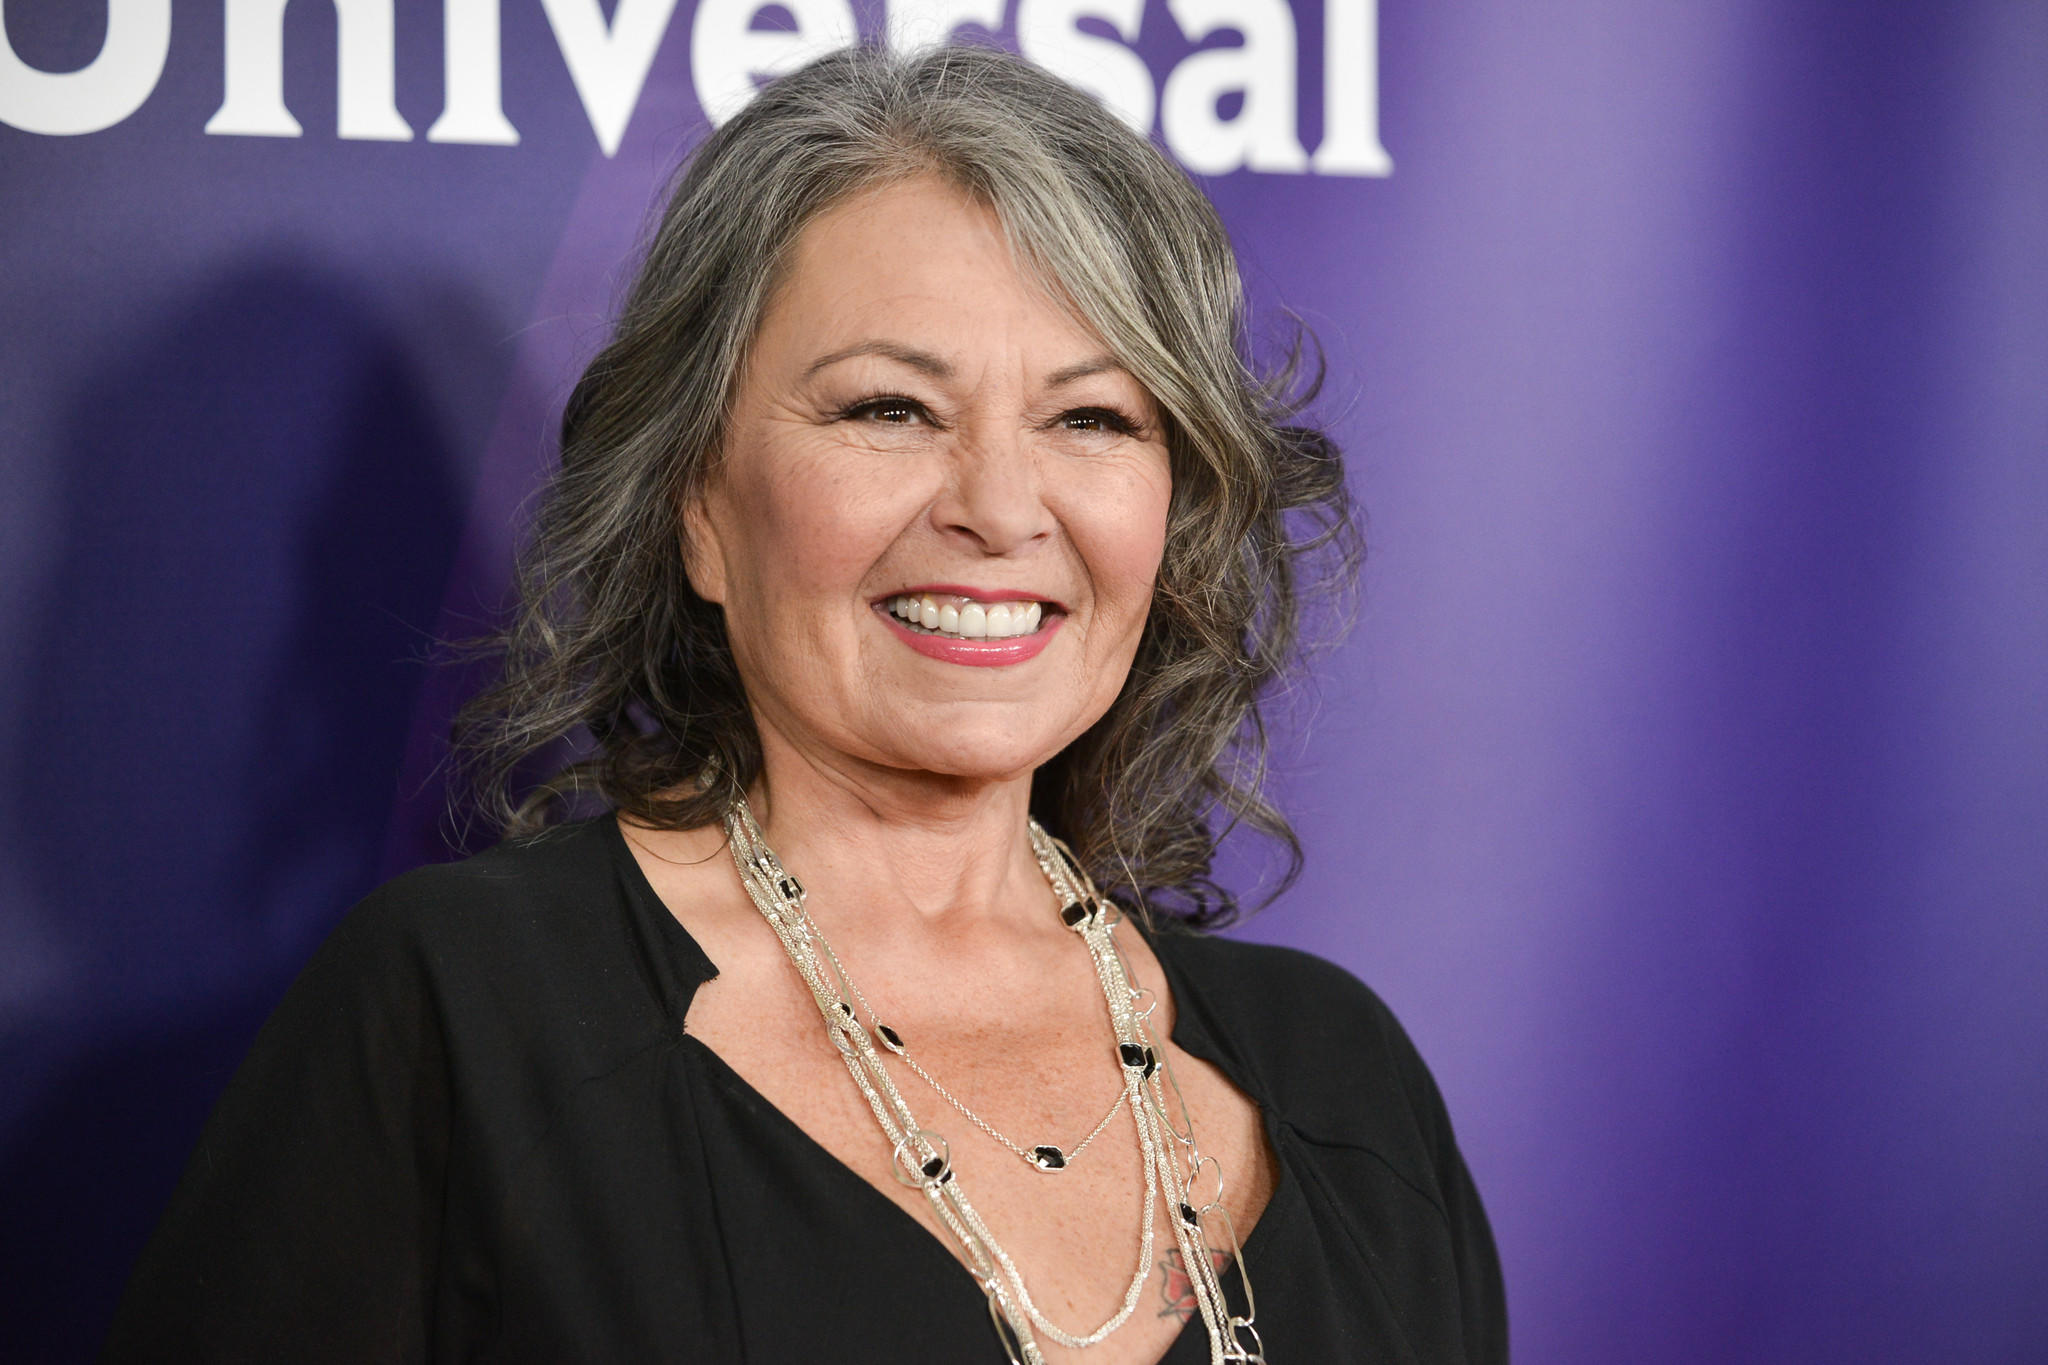 The parents of George Zimmerman have accused Roseanne Barr of posting their address and phone number on Twitter, causing them distress.